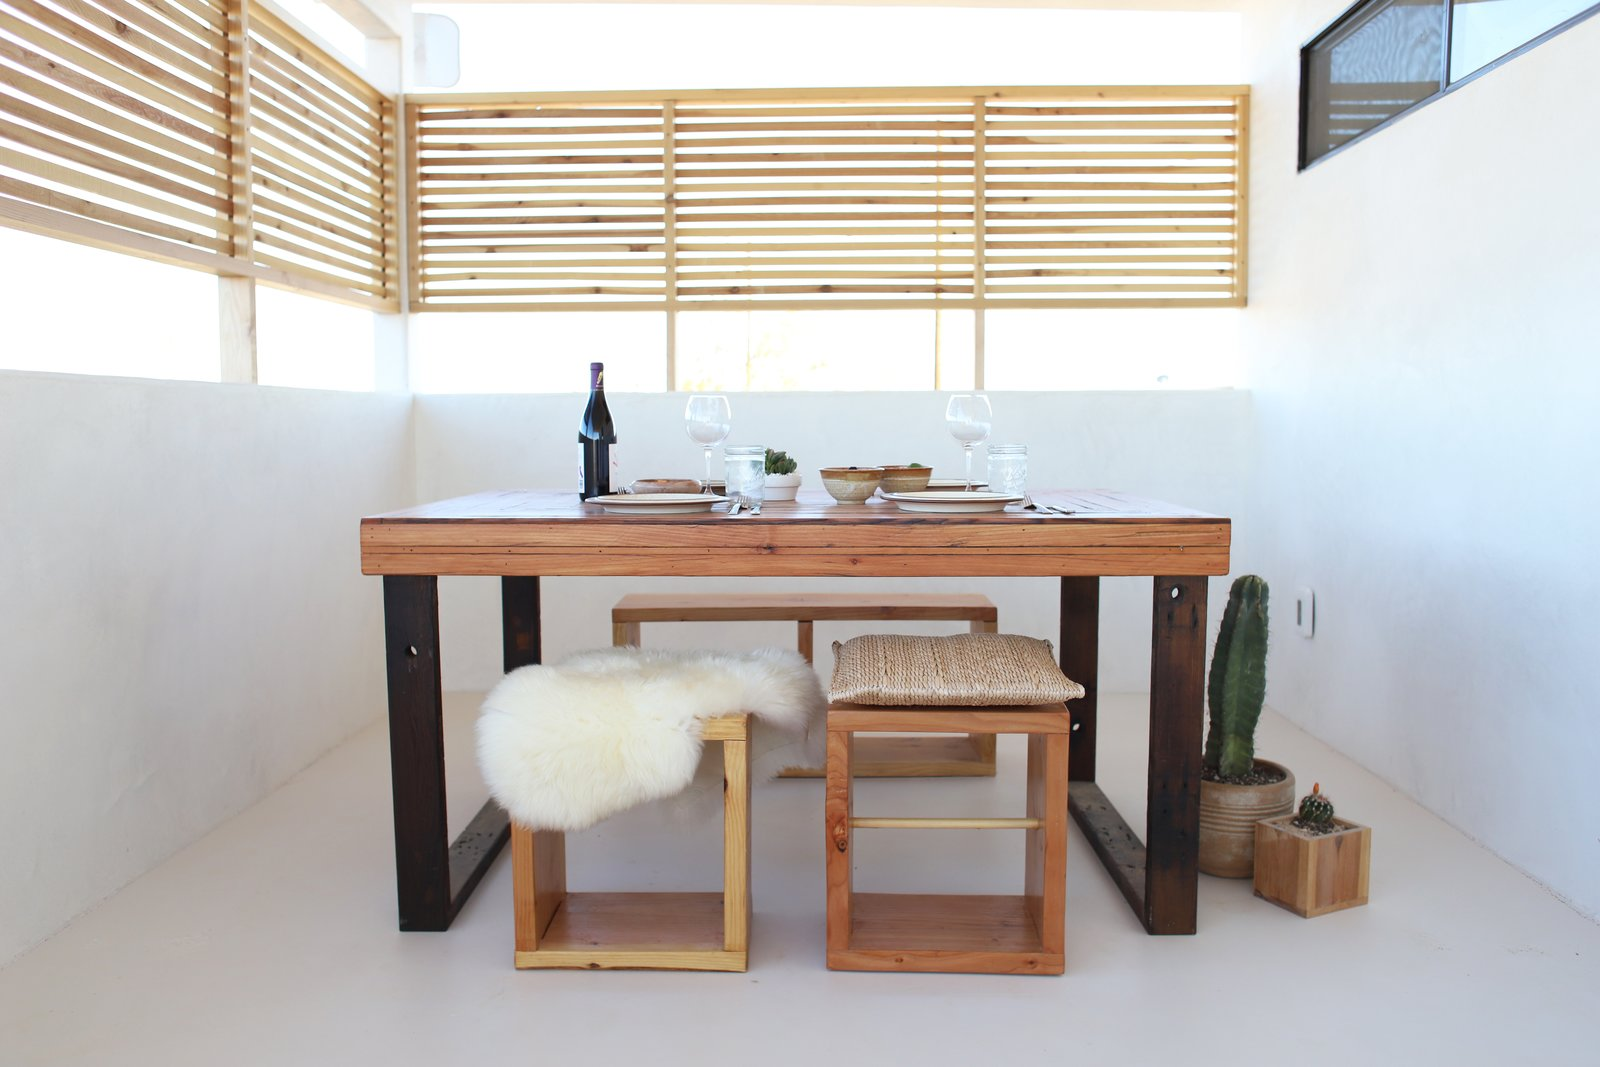 A porch enclosed with a screen to increase light and air-flow became a dining area.